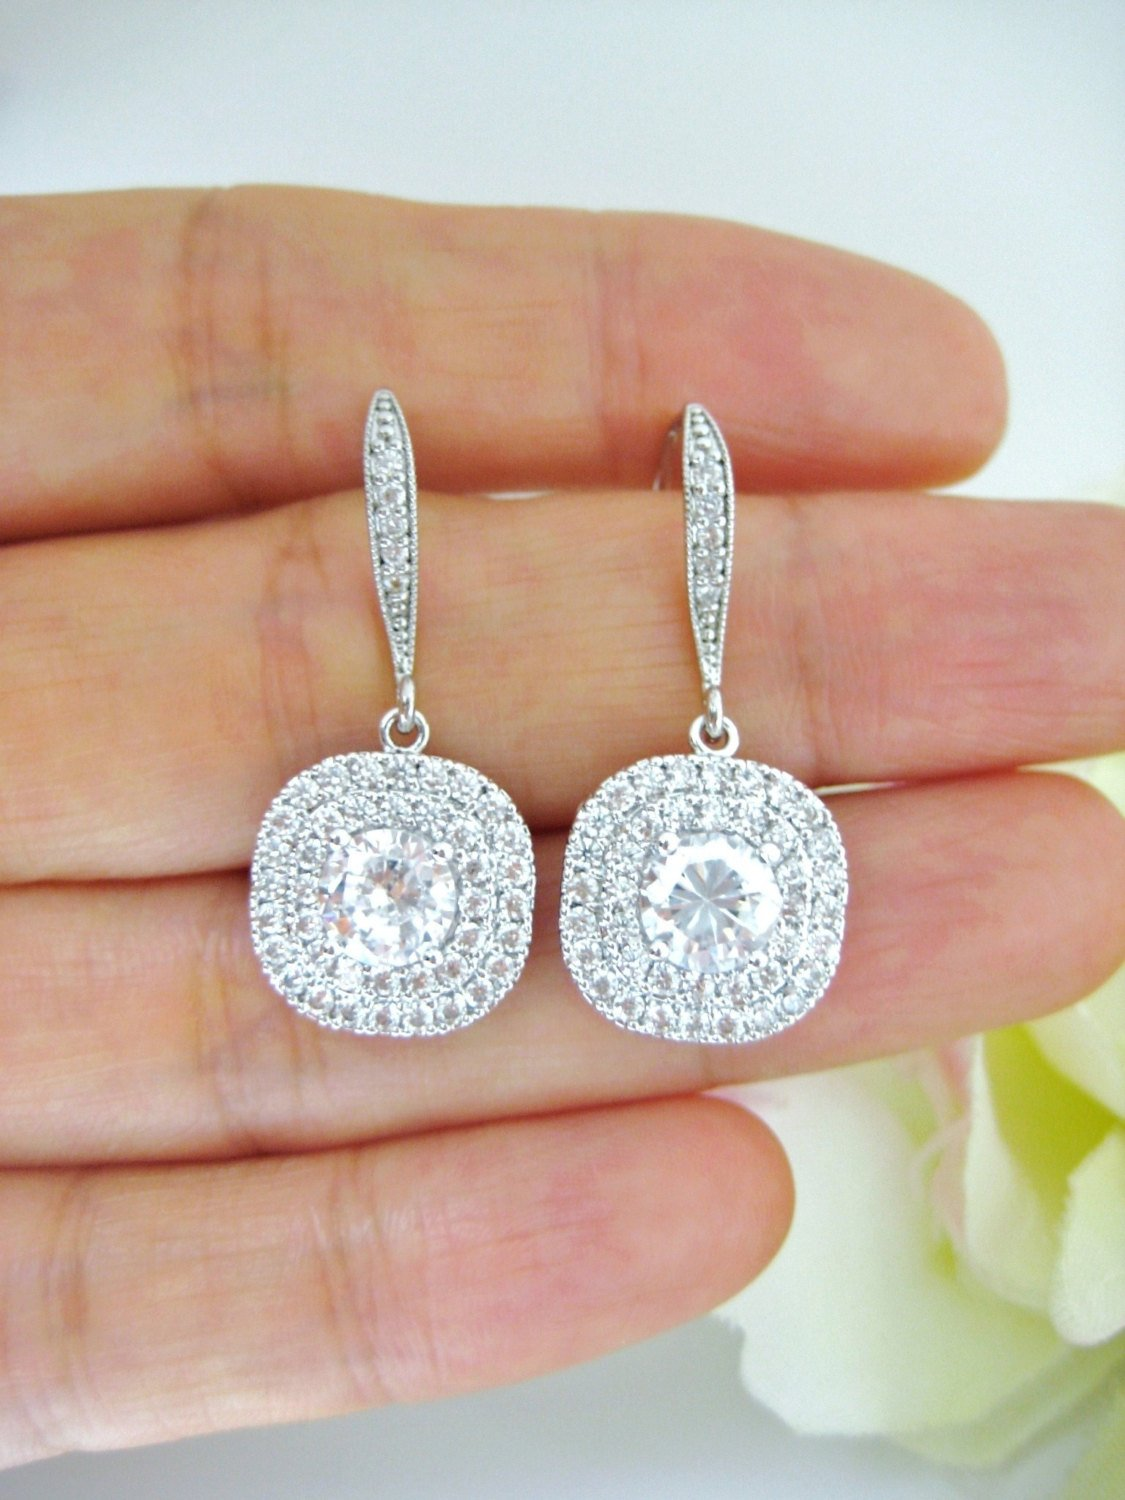 Rose Gold Bridal Crystal Earrings Square Cut Halo Style Earrings Wedding Jewelry Bridesmaids Gift Cubic Zirconia Multi-Stone Earrings (E204)